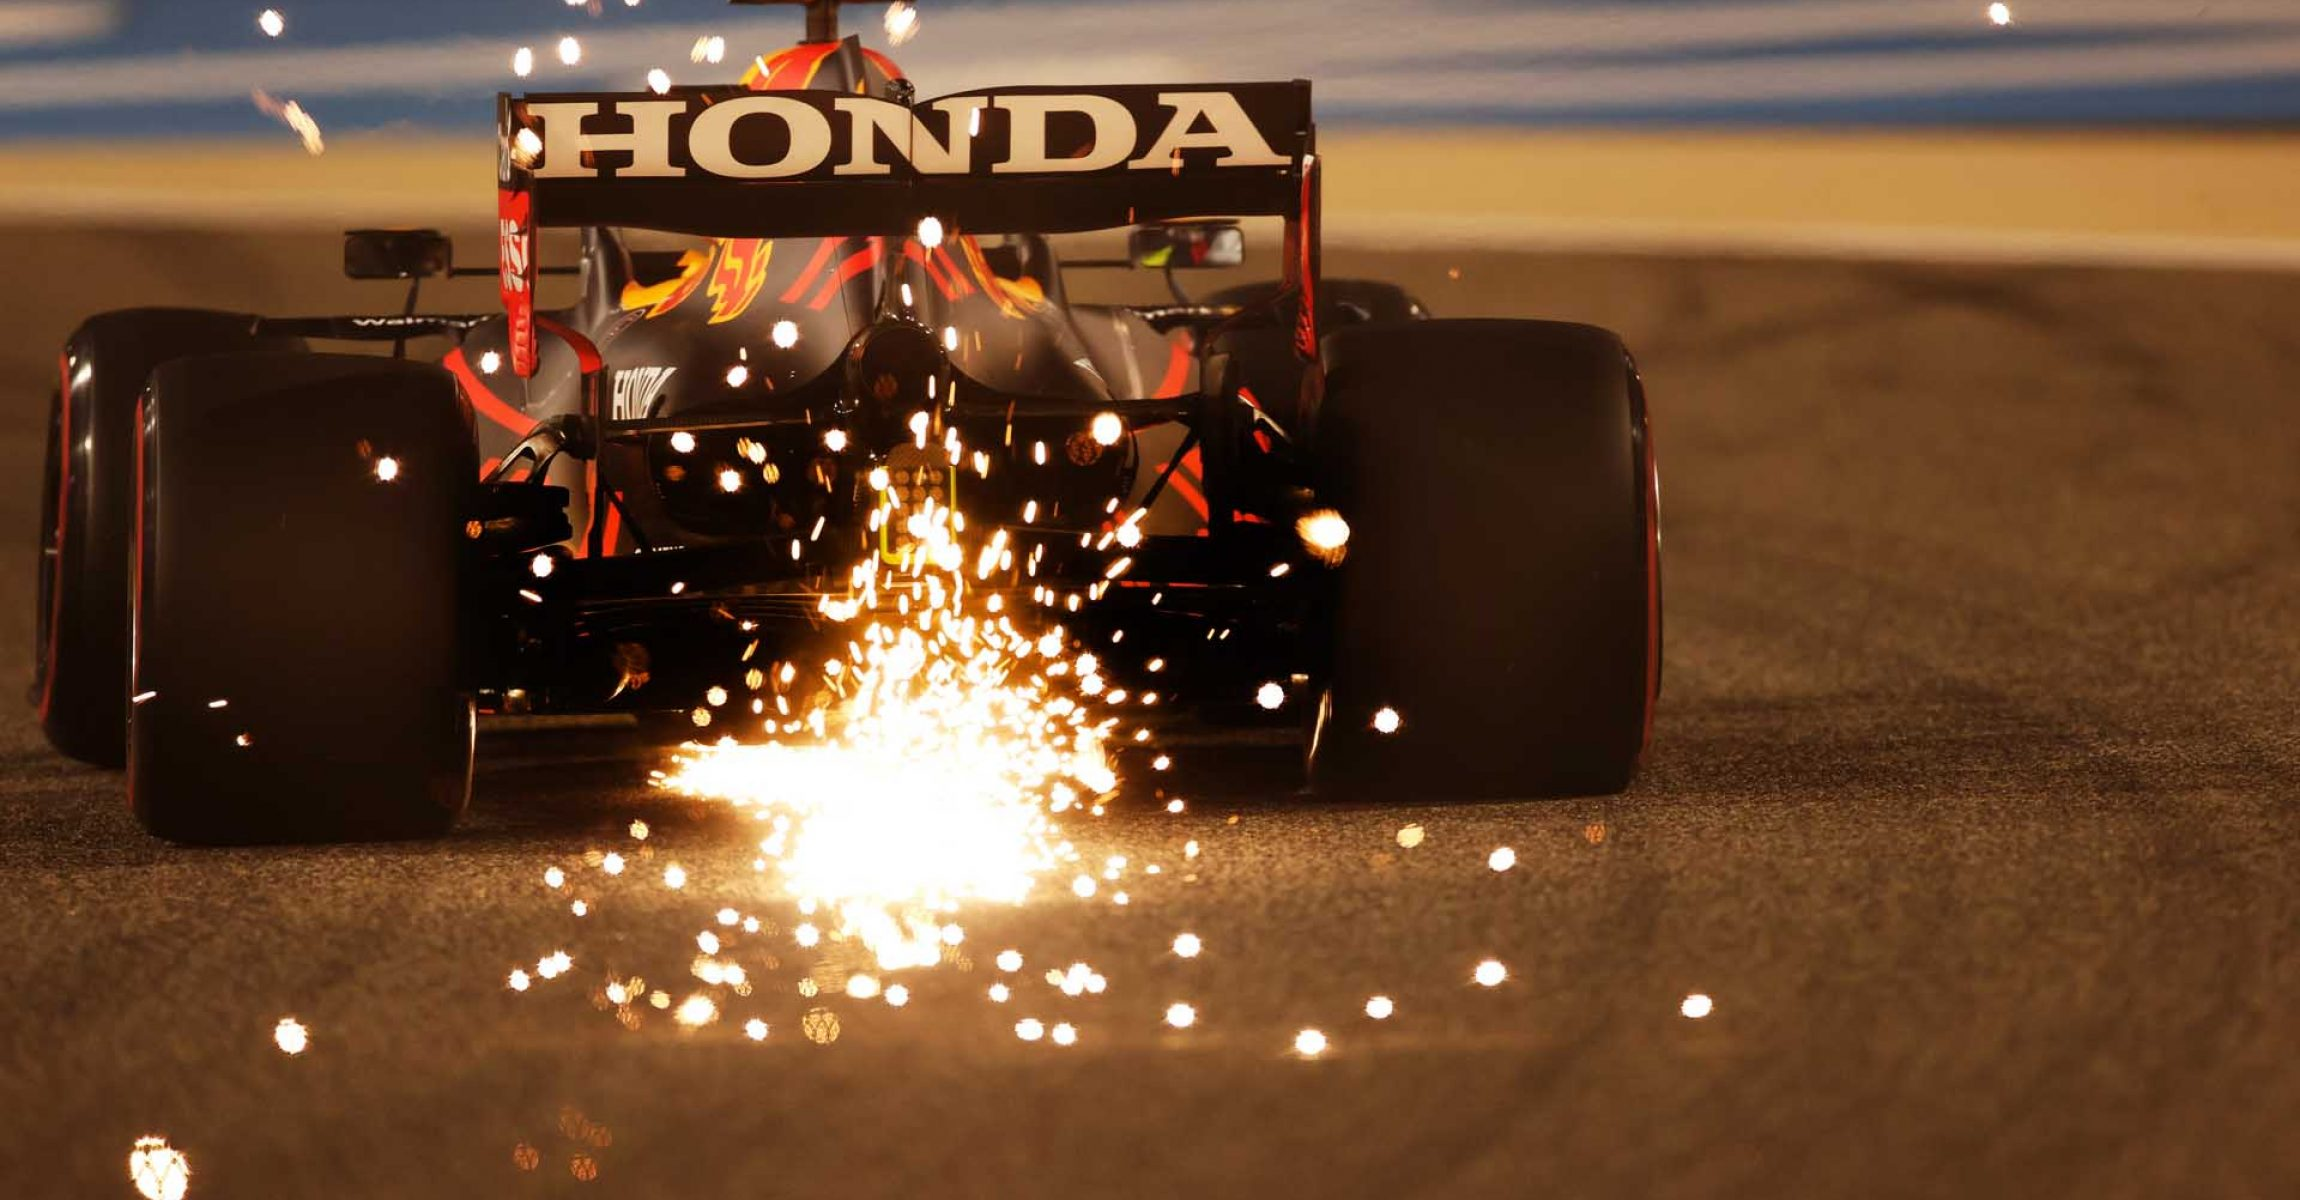 BAHRAIN, BAHRAIN - MARCH 26: Sparks fly behind Sergio Perez of Mexico driving the (11) Red Bull Racing RB16B Honda during practice ahead of the F1 Grand Prix of Bahrain at Bahrain International Circuit on March 26, 2021 in Bahrain, Bahrain. (Photo by Lars Baron/Getty Images)